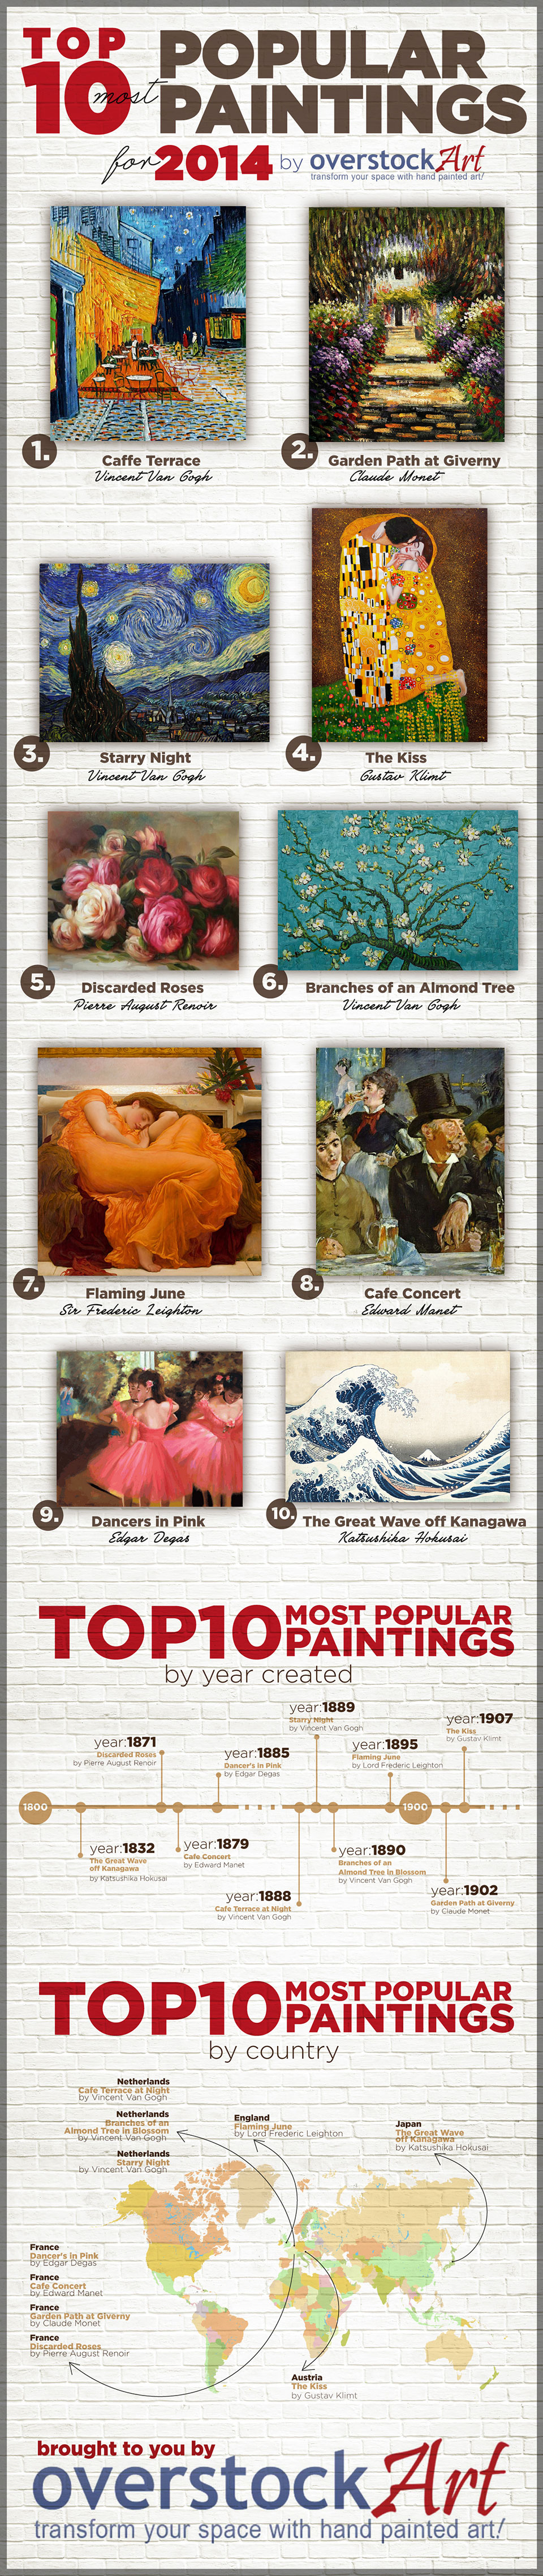 Top 10 Most Popular Oil Paintings for 2014